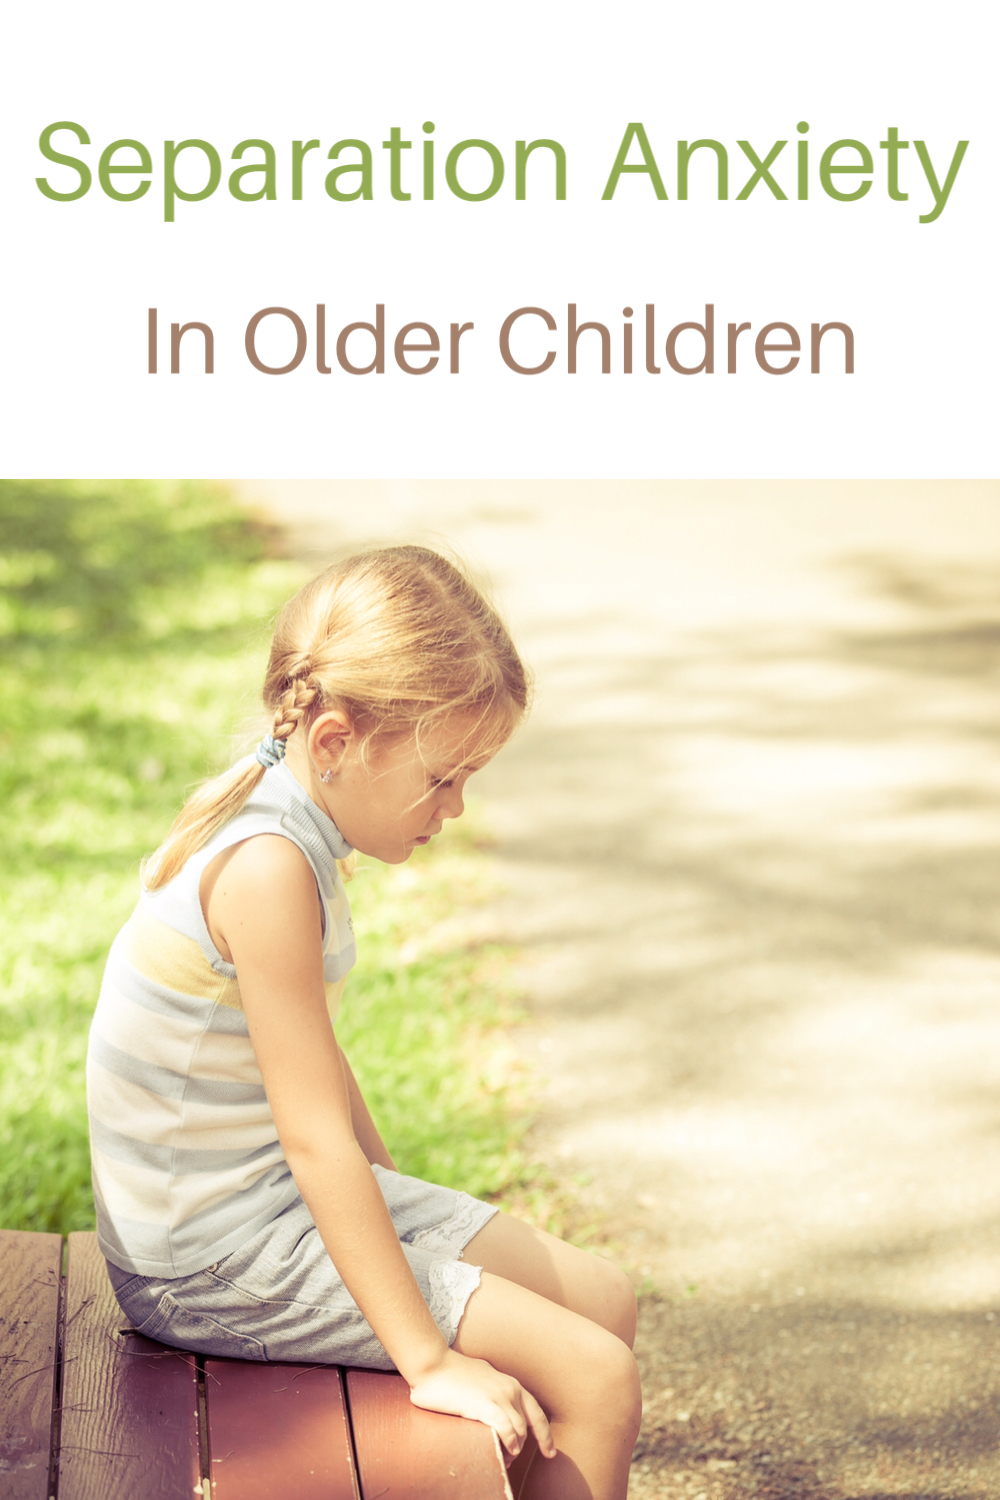 Separation anxiety in older children - sad little girl on a bench